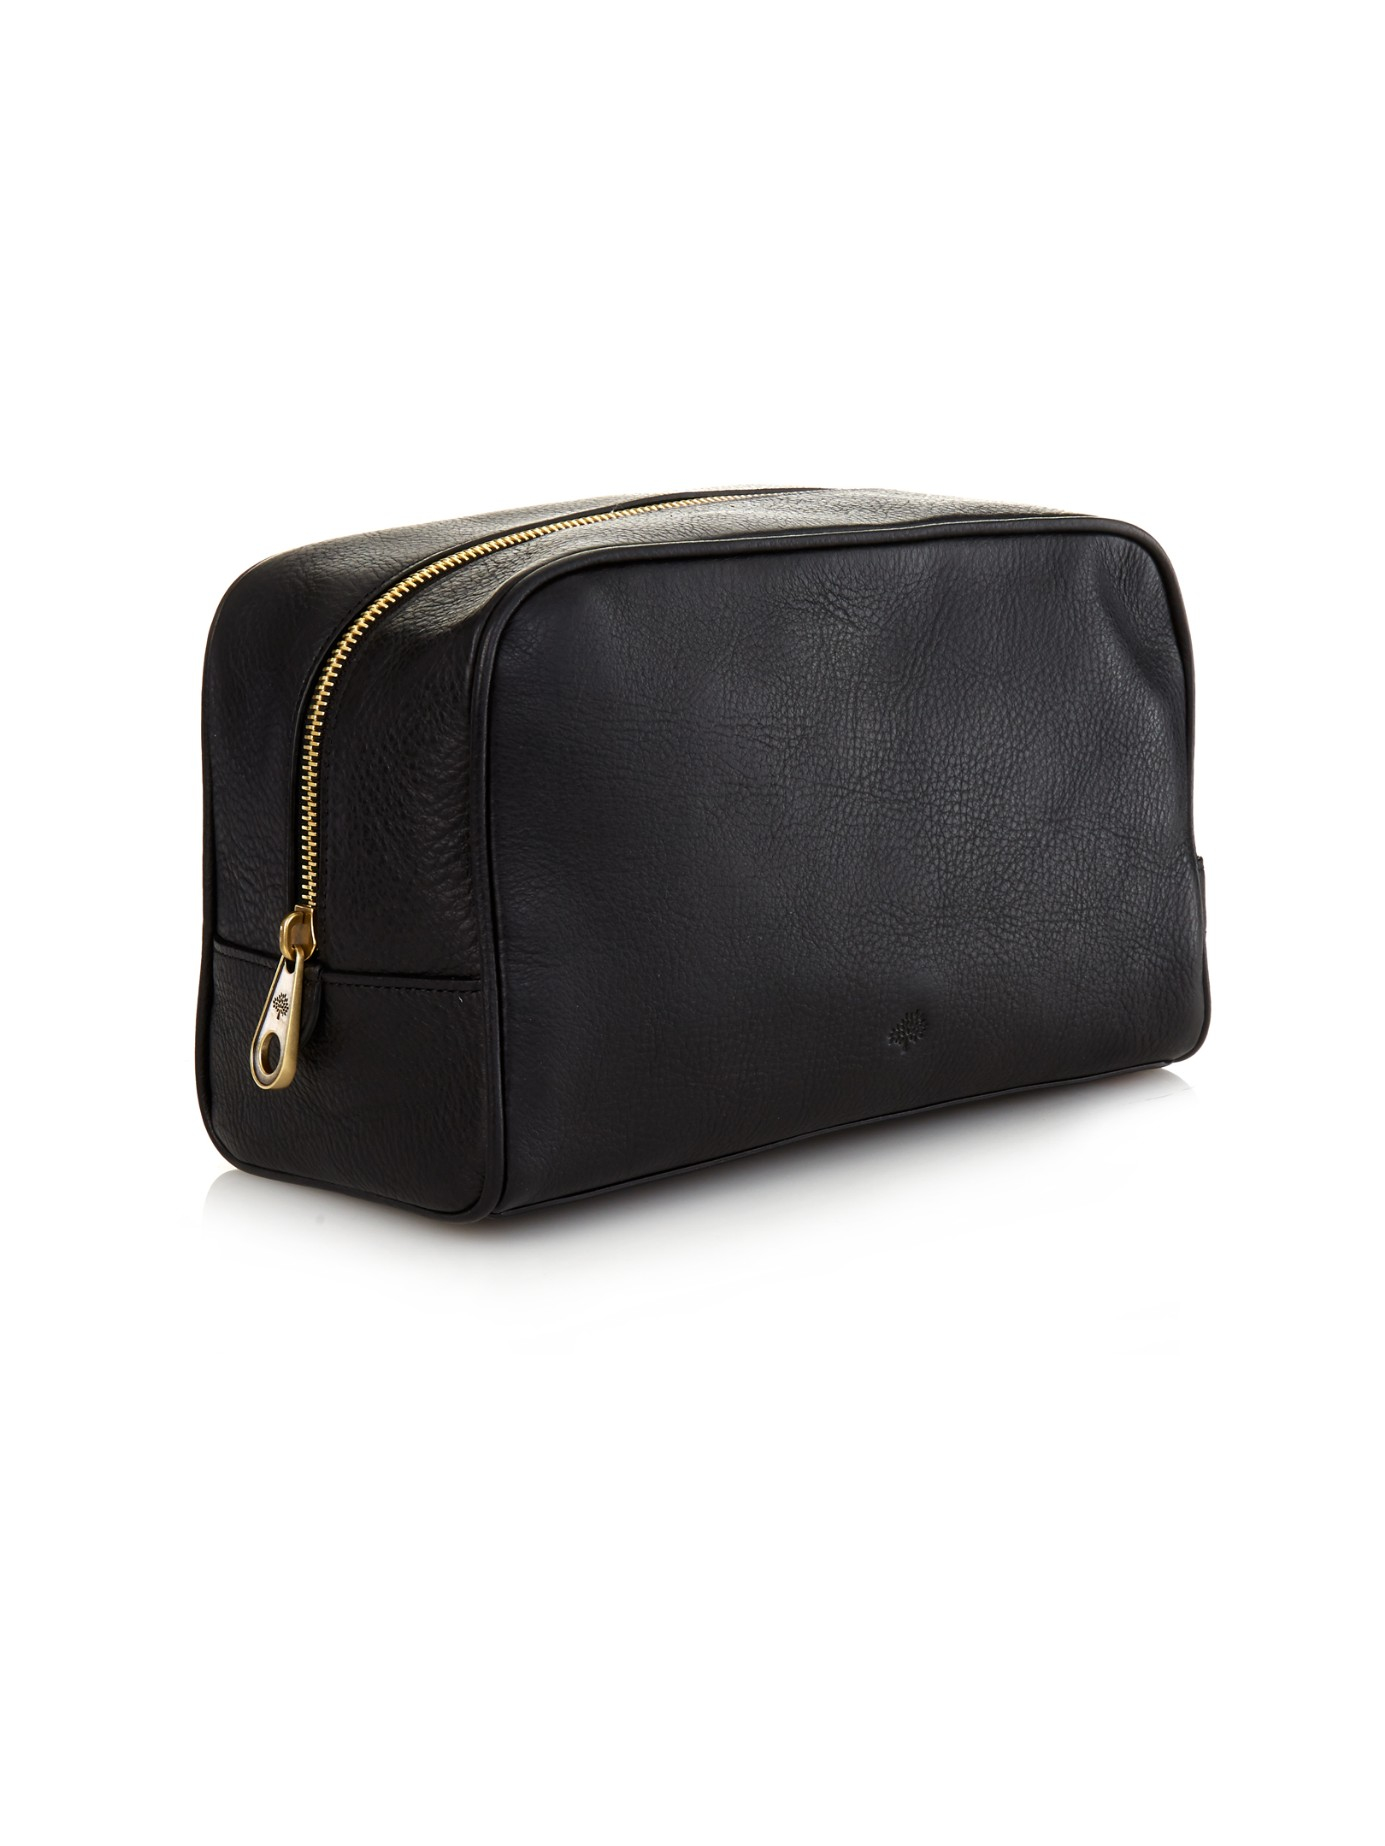 3822808bd5c ... discount code for lyst mulberry grained leather washbag in black for  men 728ce 784f6 greece mulberry medium clipper pebble ...